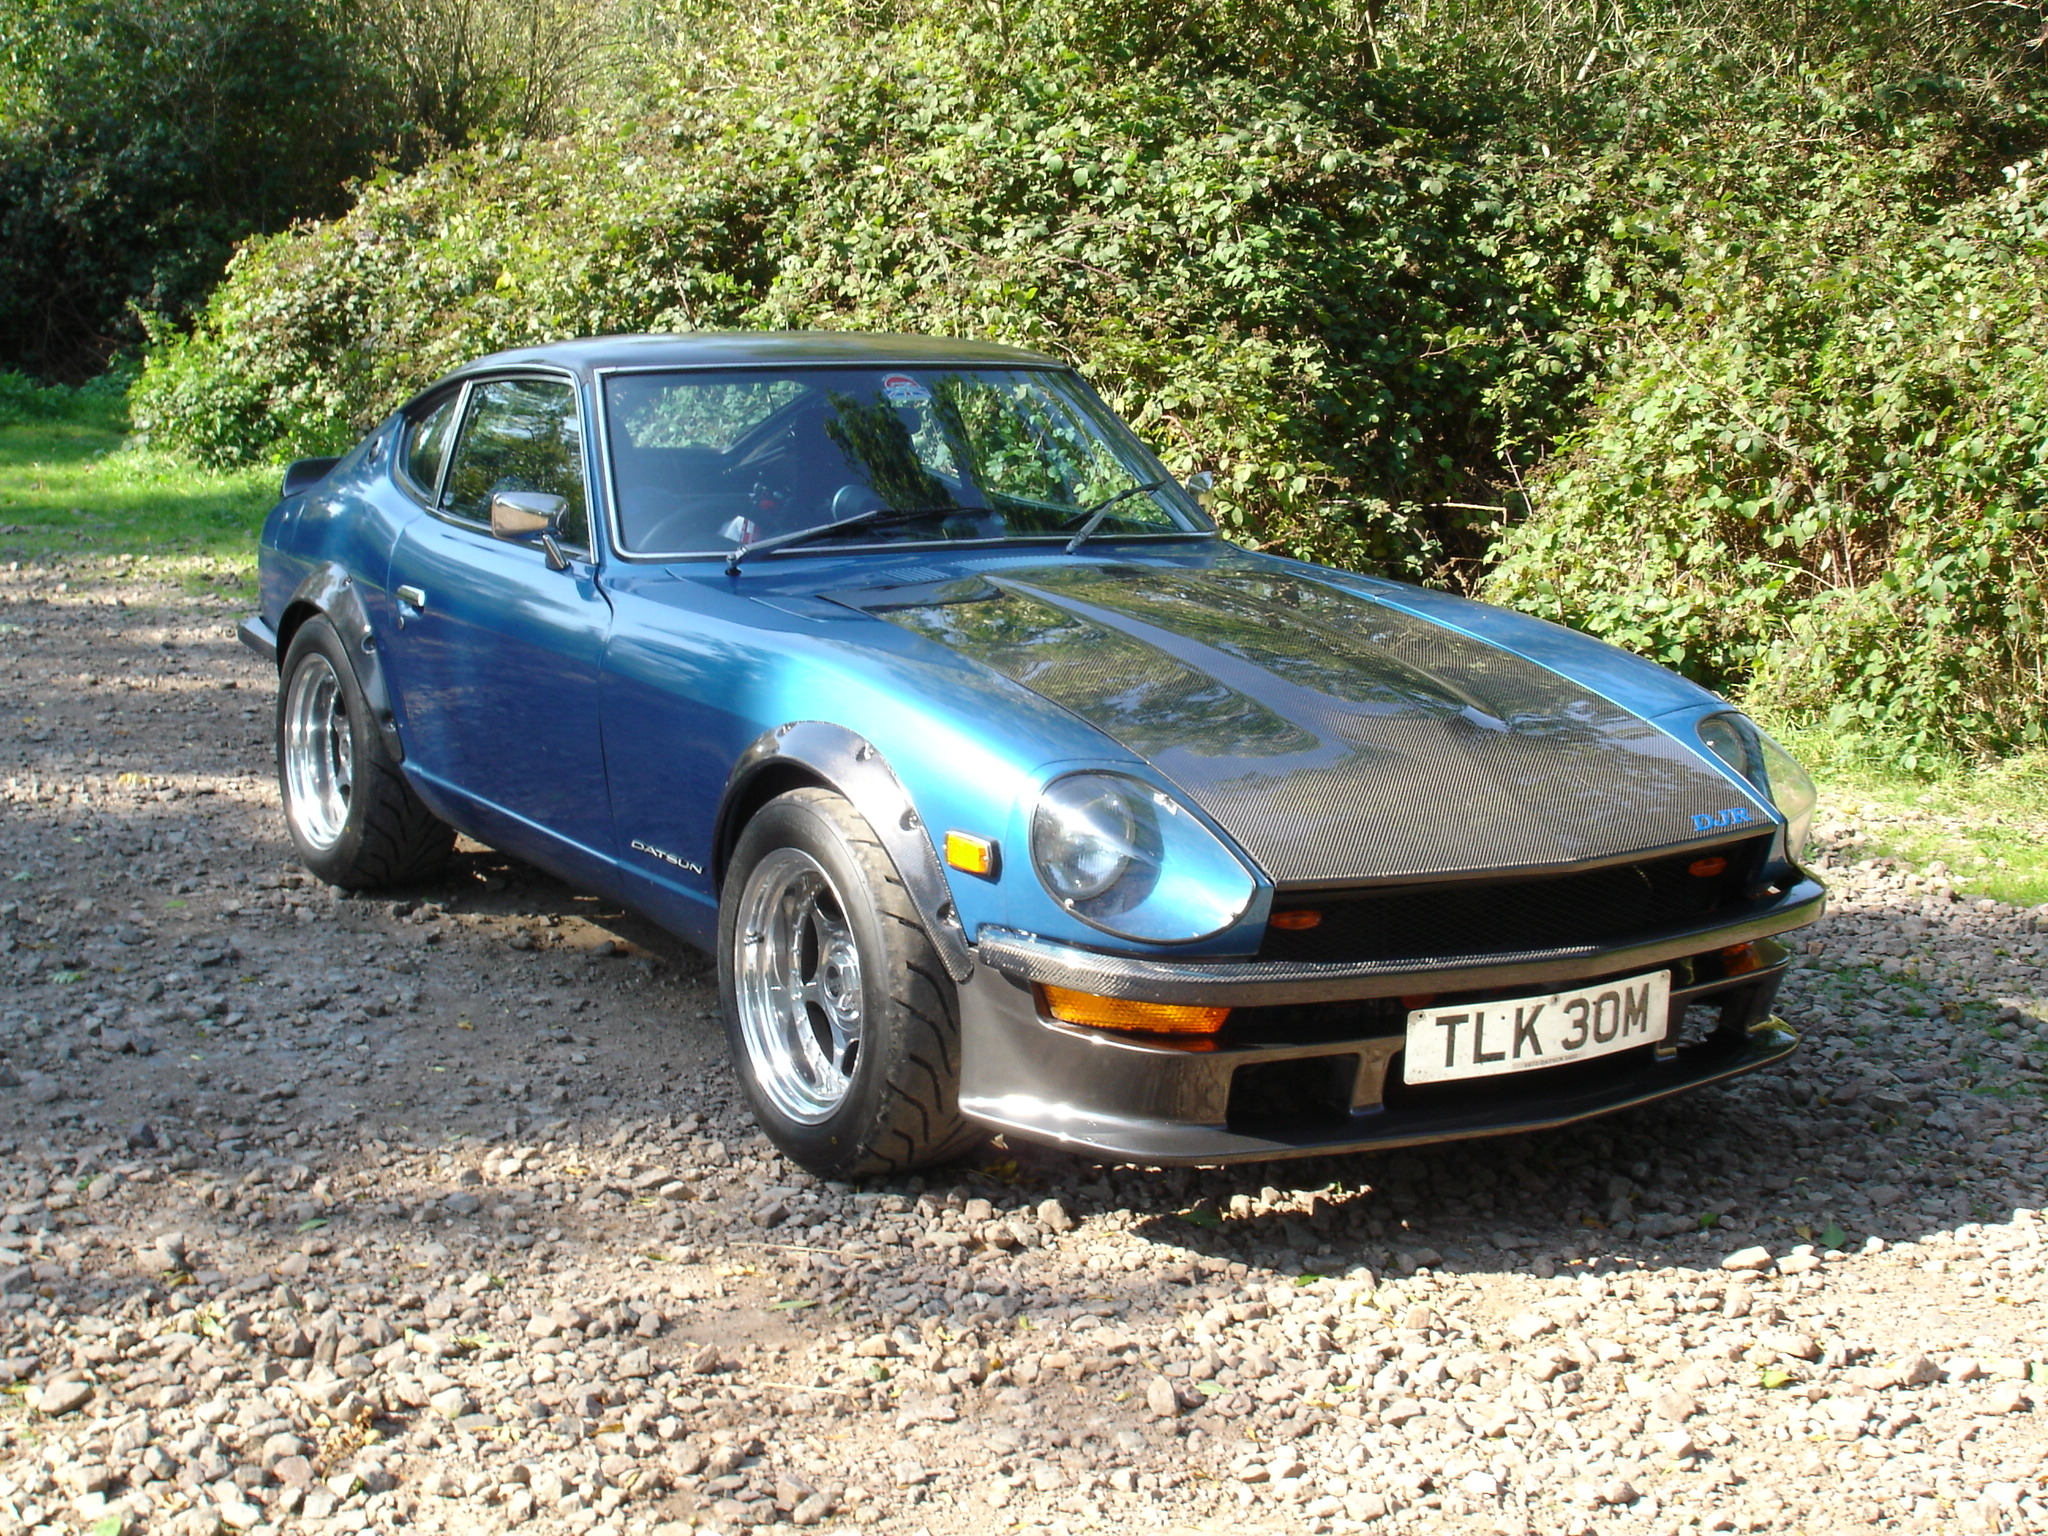 1973 datsun 240z l6 normally aspirated 1 4 mile drag racing